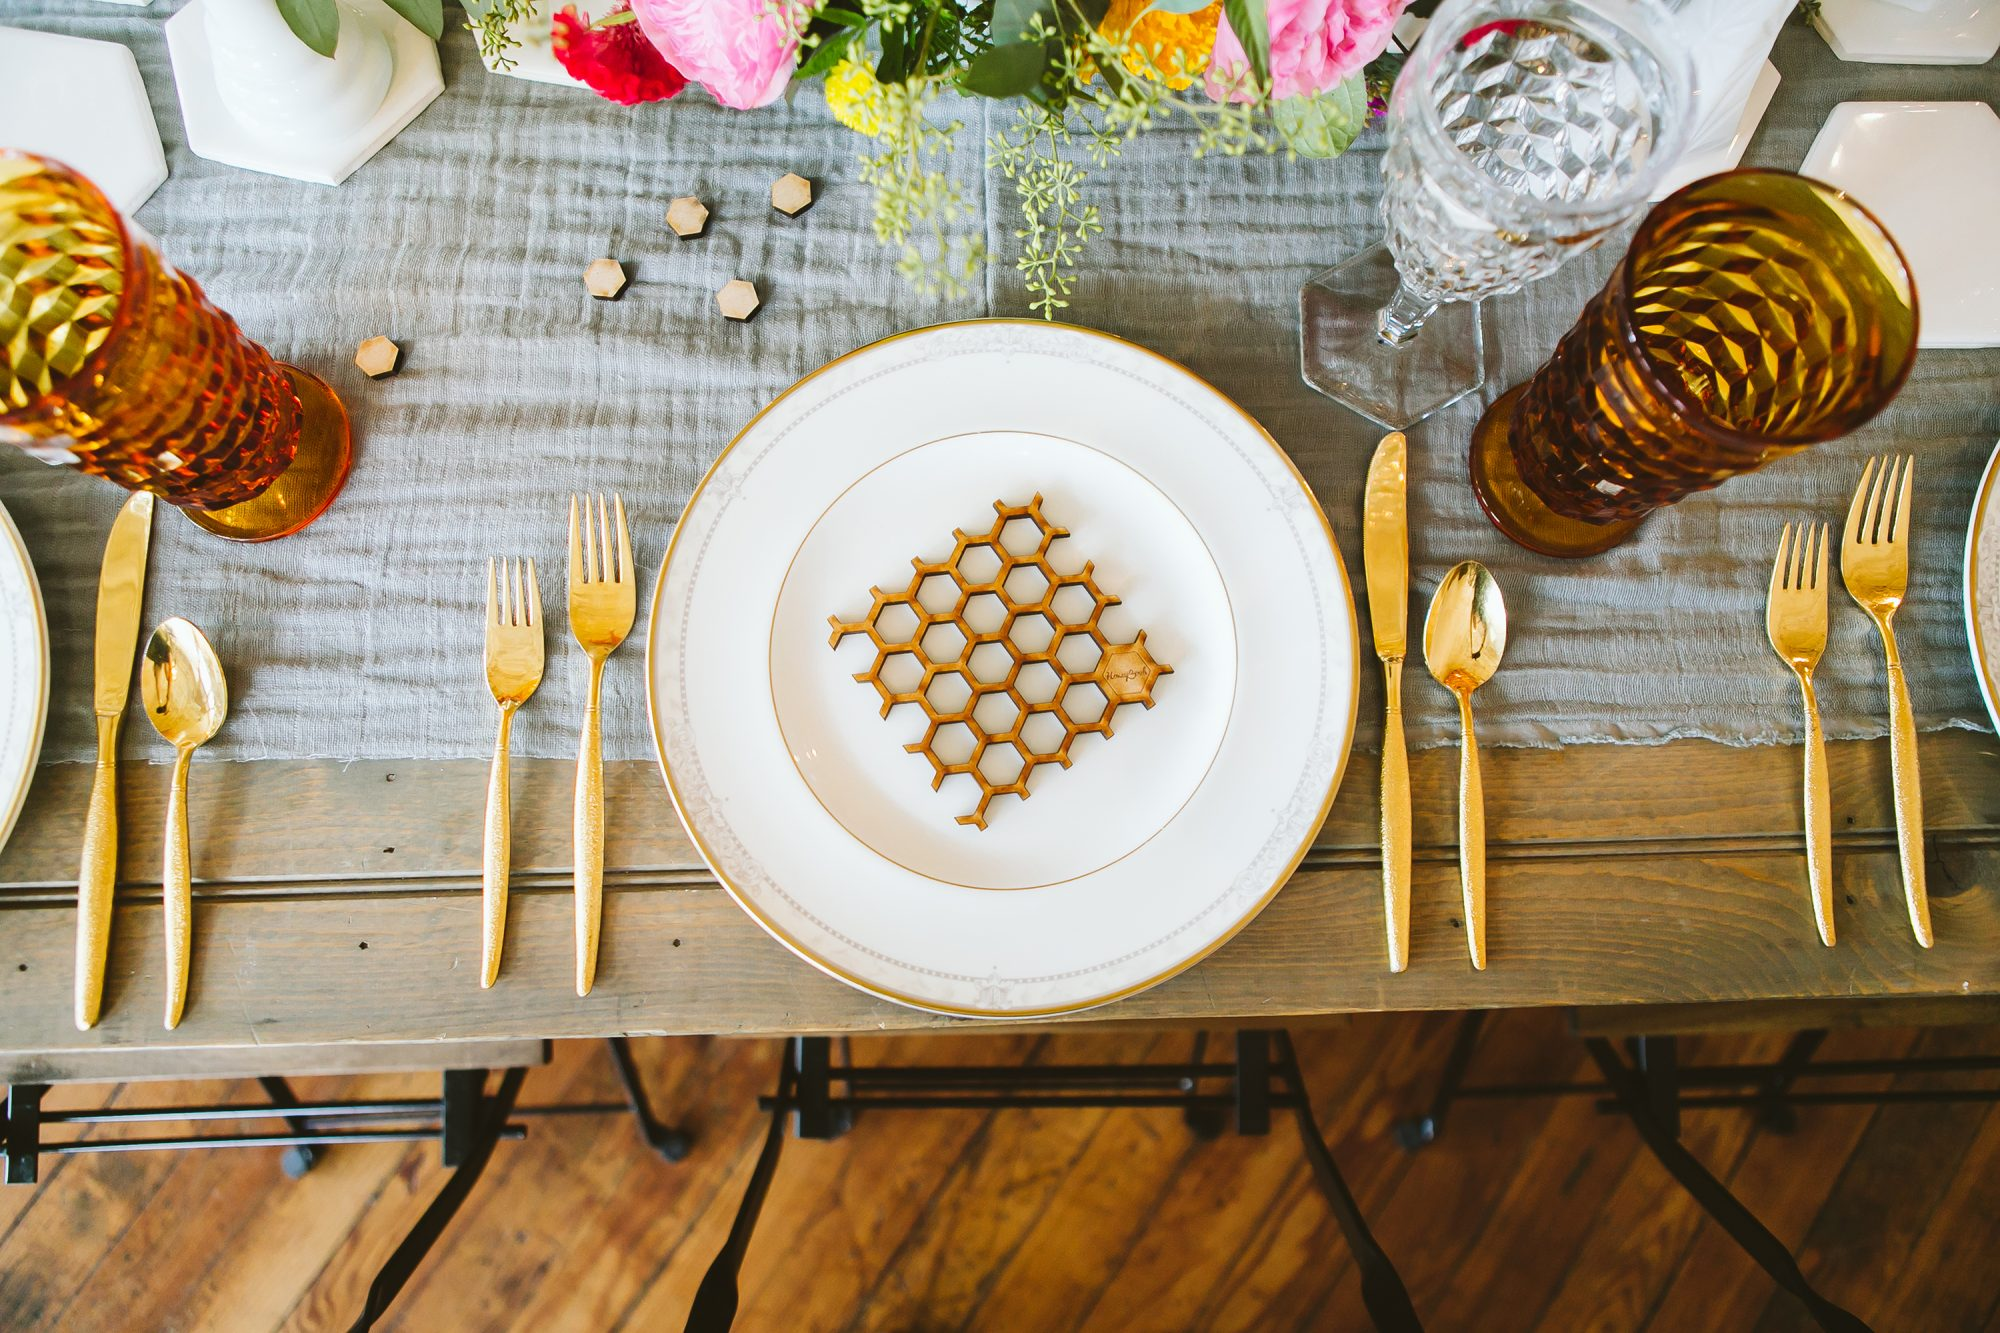 Honeycomb Wedding Inspiration, Place Setting with Wooden Honeycomb on Charger